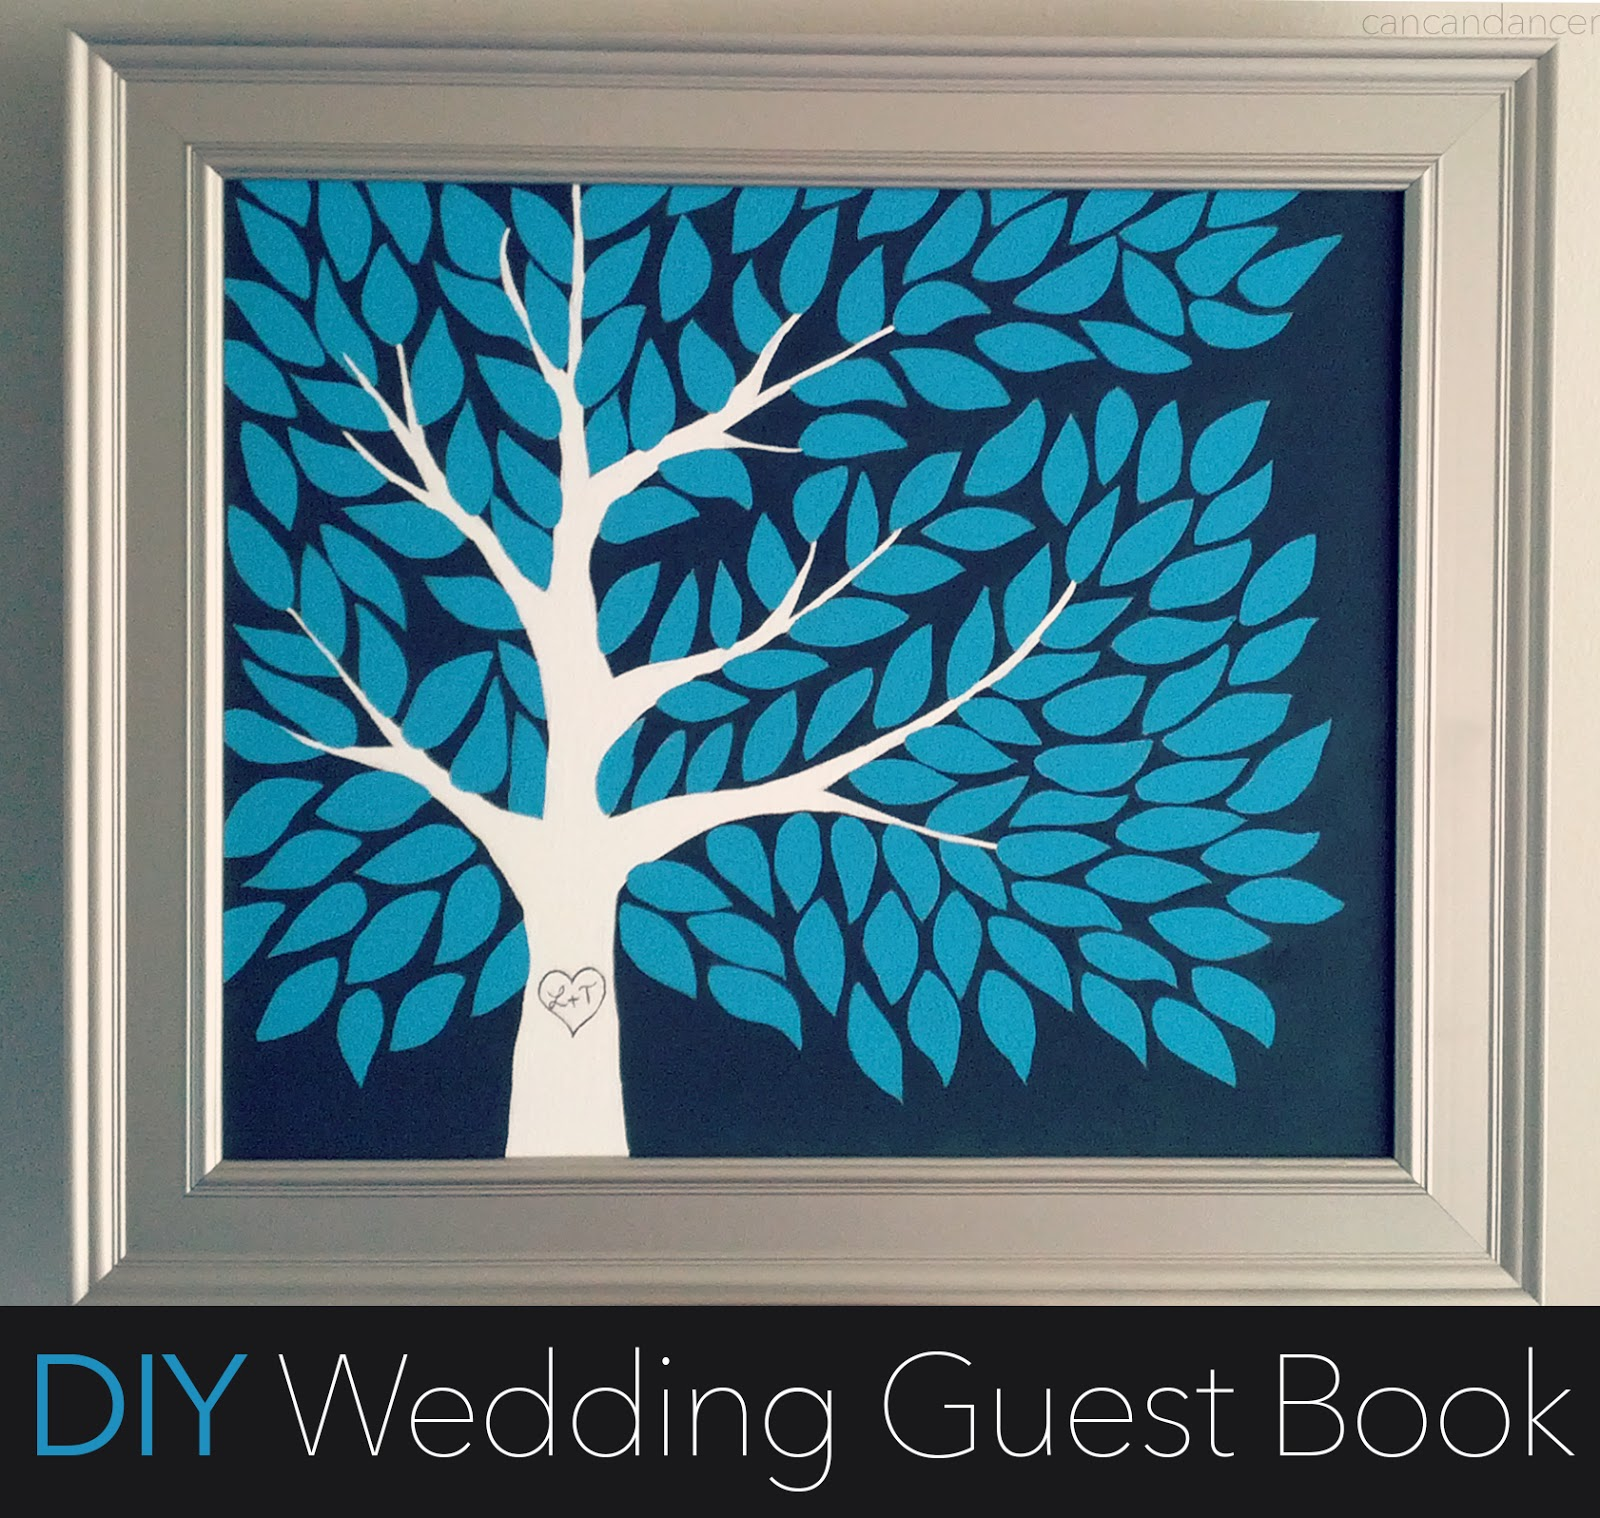 Diy Cover Guest Book : Can dancer diy wedding guest book